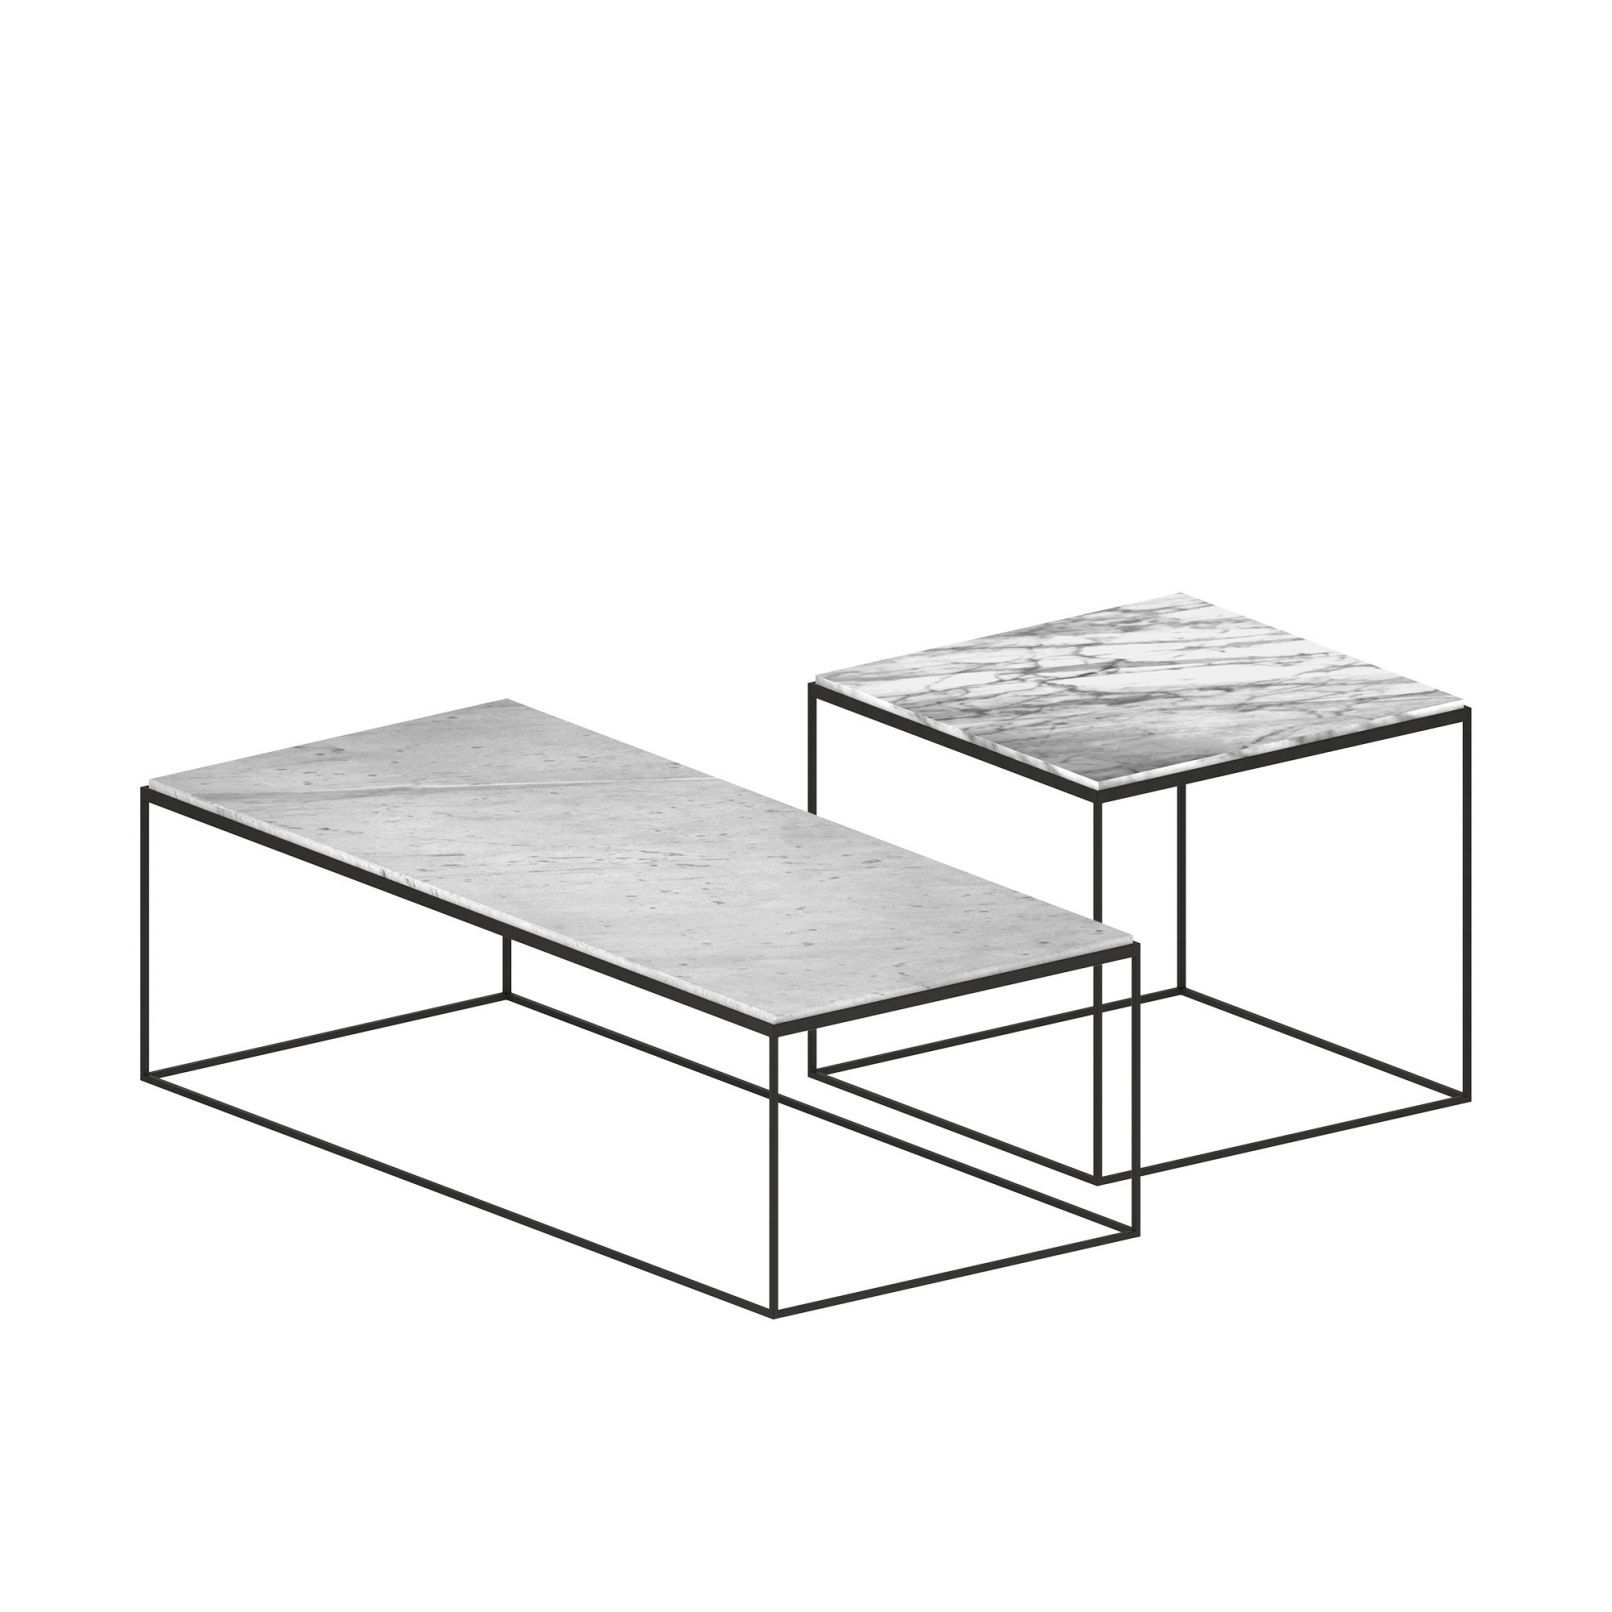 30b8e922d7ce2a9863c506f6c96aed18 Frais De Table Basse Grande Taille